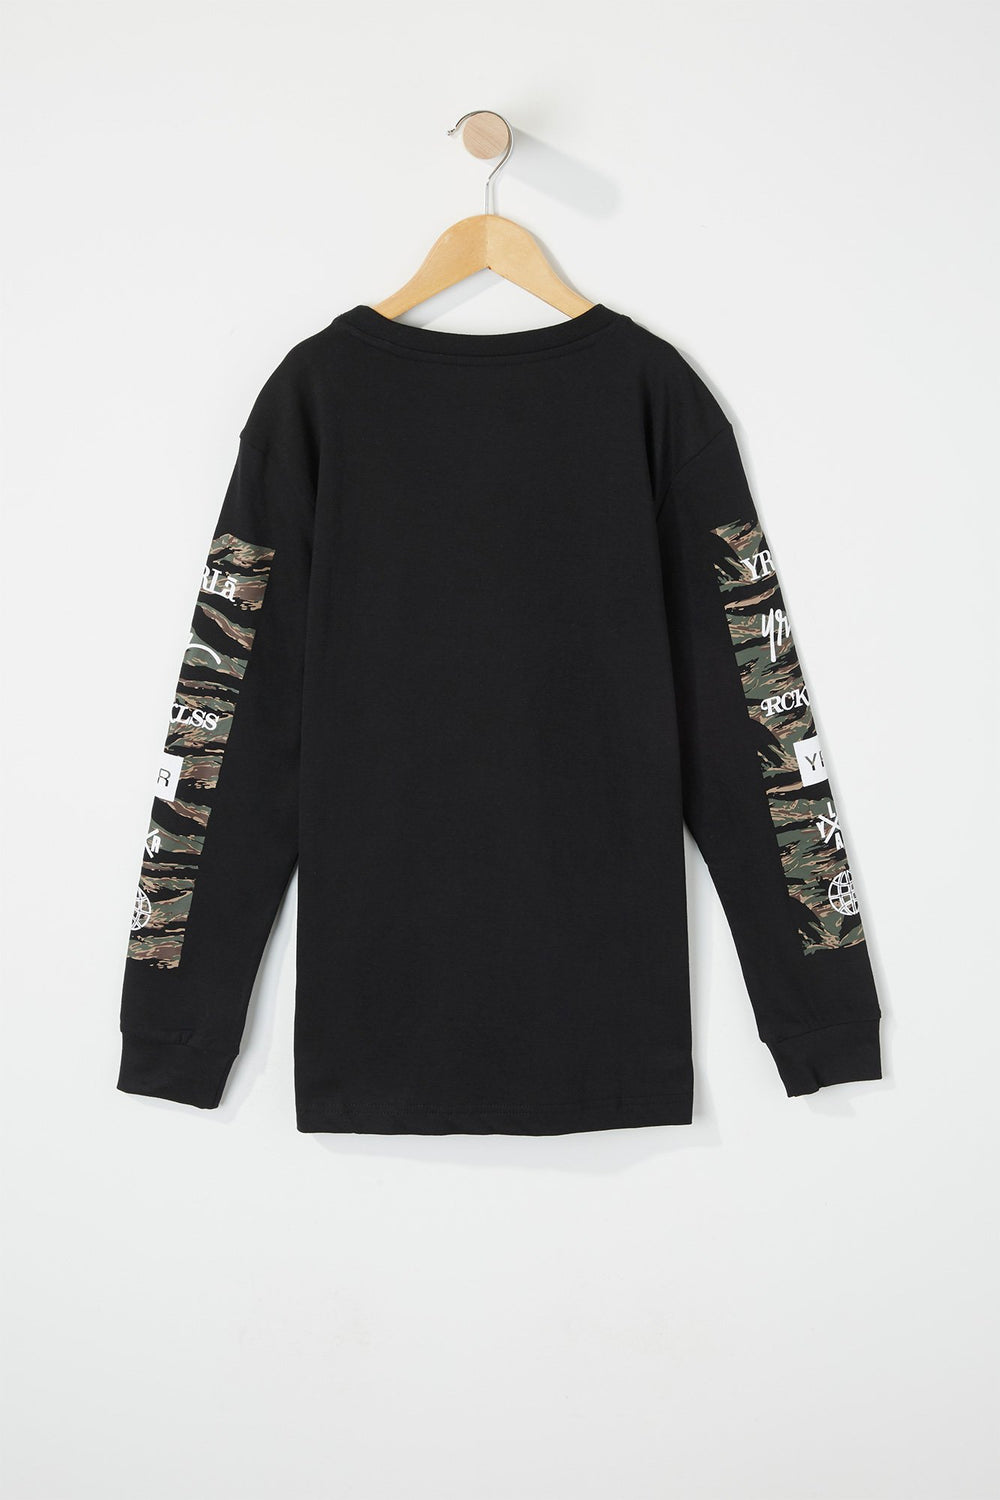 T-Shirt À Manches Longues Camouflage Young & Reckless Noir